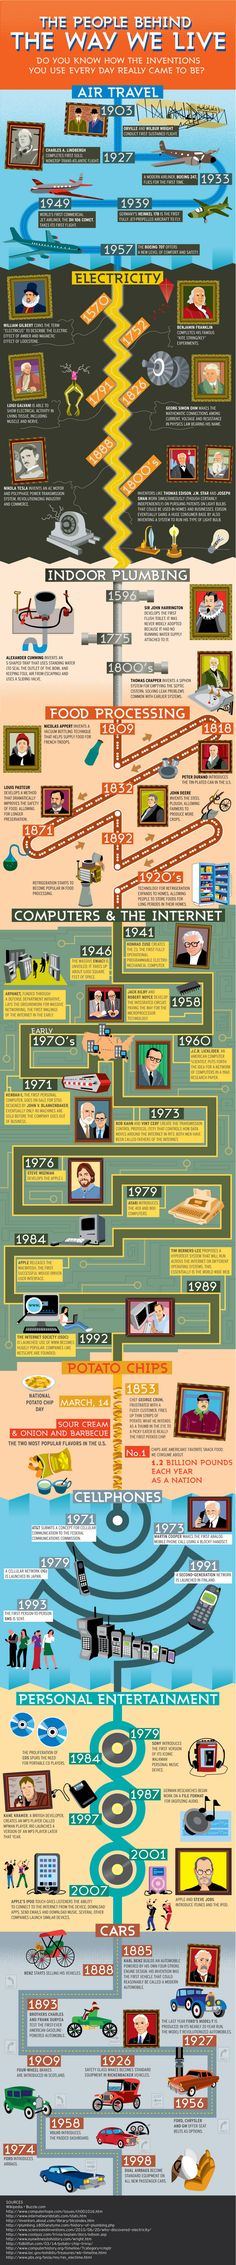 Greatest Inventions from the 18th, 19th, and 20th Century